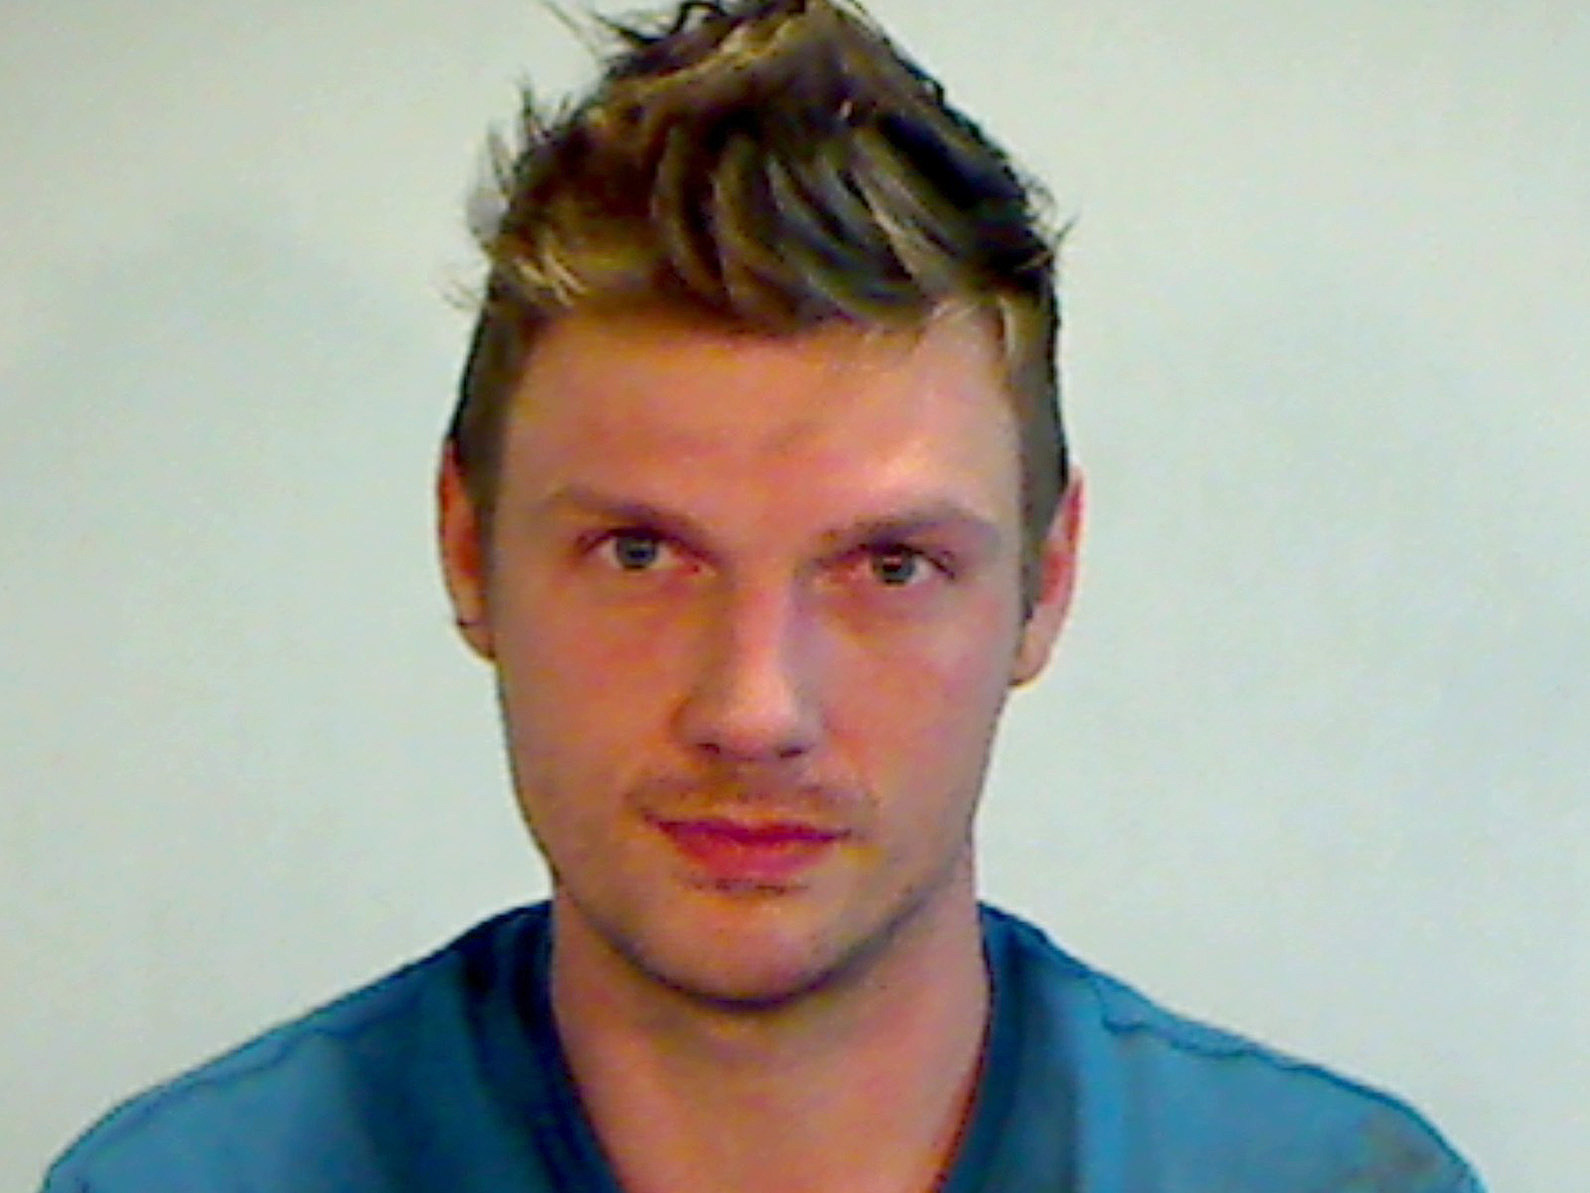 Nick Carter says he was 'trying to enjoy vacation' before arrest